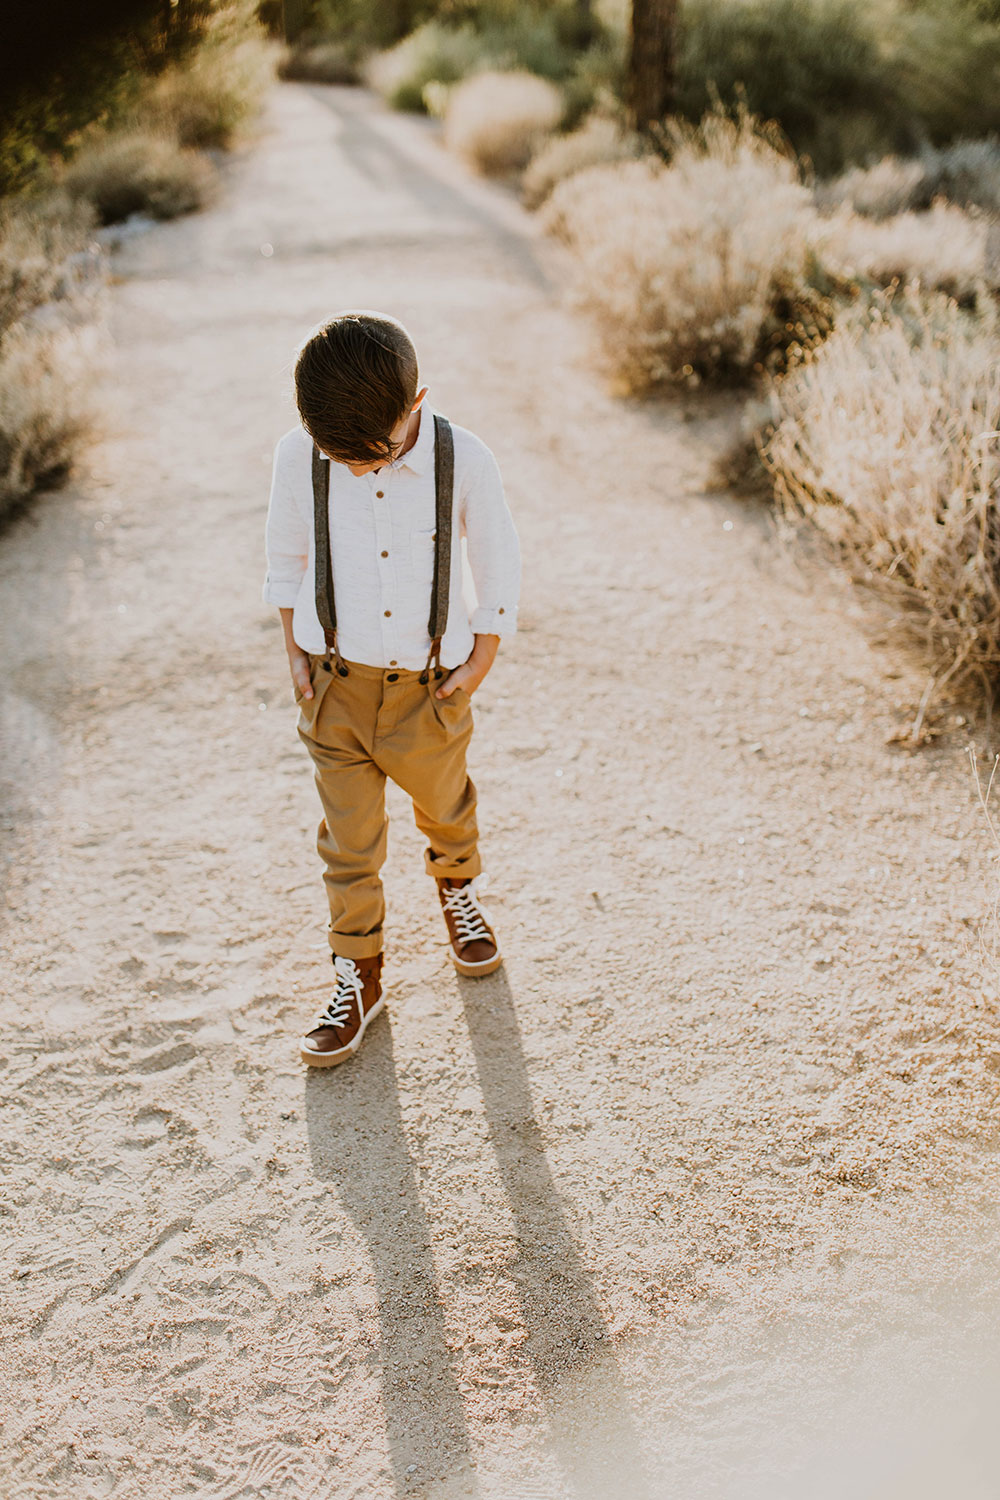 handsome young man in his suspenders #familyphotos #boysclothes #outfitideas | thelovedesignedlife.com